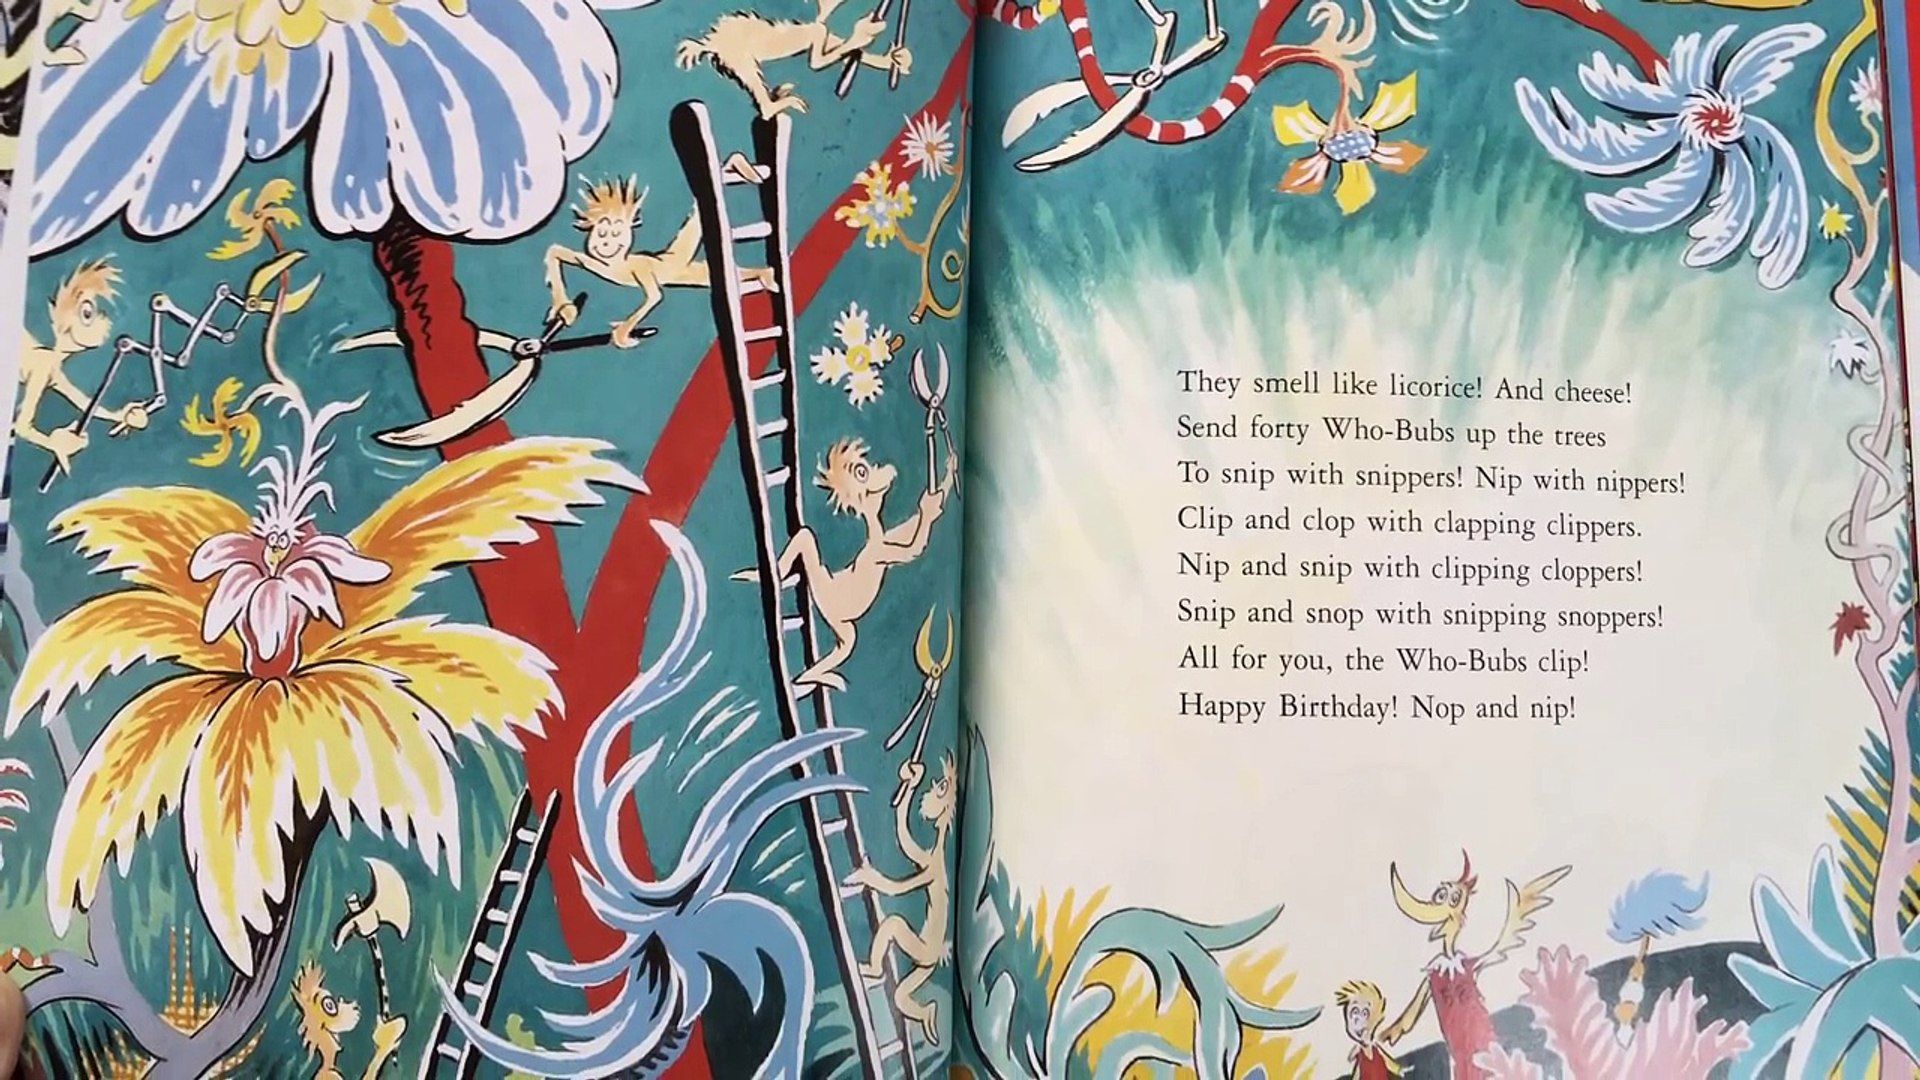 Happy Birthday To You By Dr Seuss Read Aloud Dr Seusss Birthday Video Dailymotion